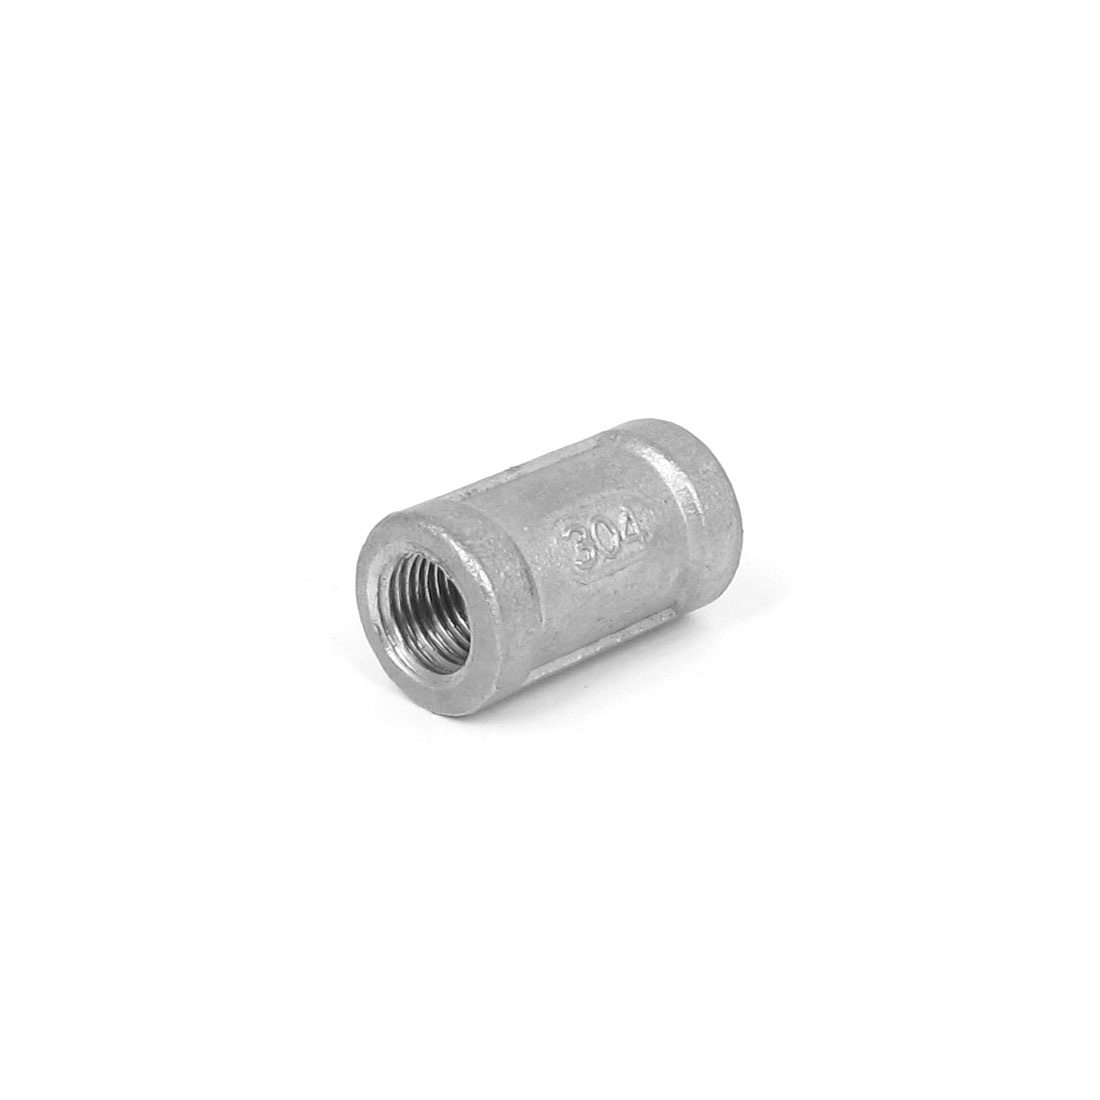 1/8BSP Female Threaded Straight Water Pipe Coupling Fitting Connector